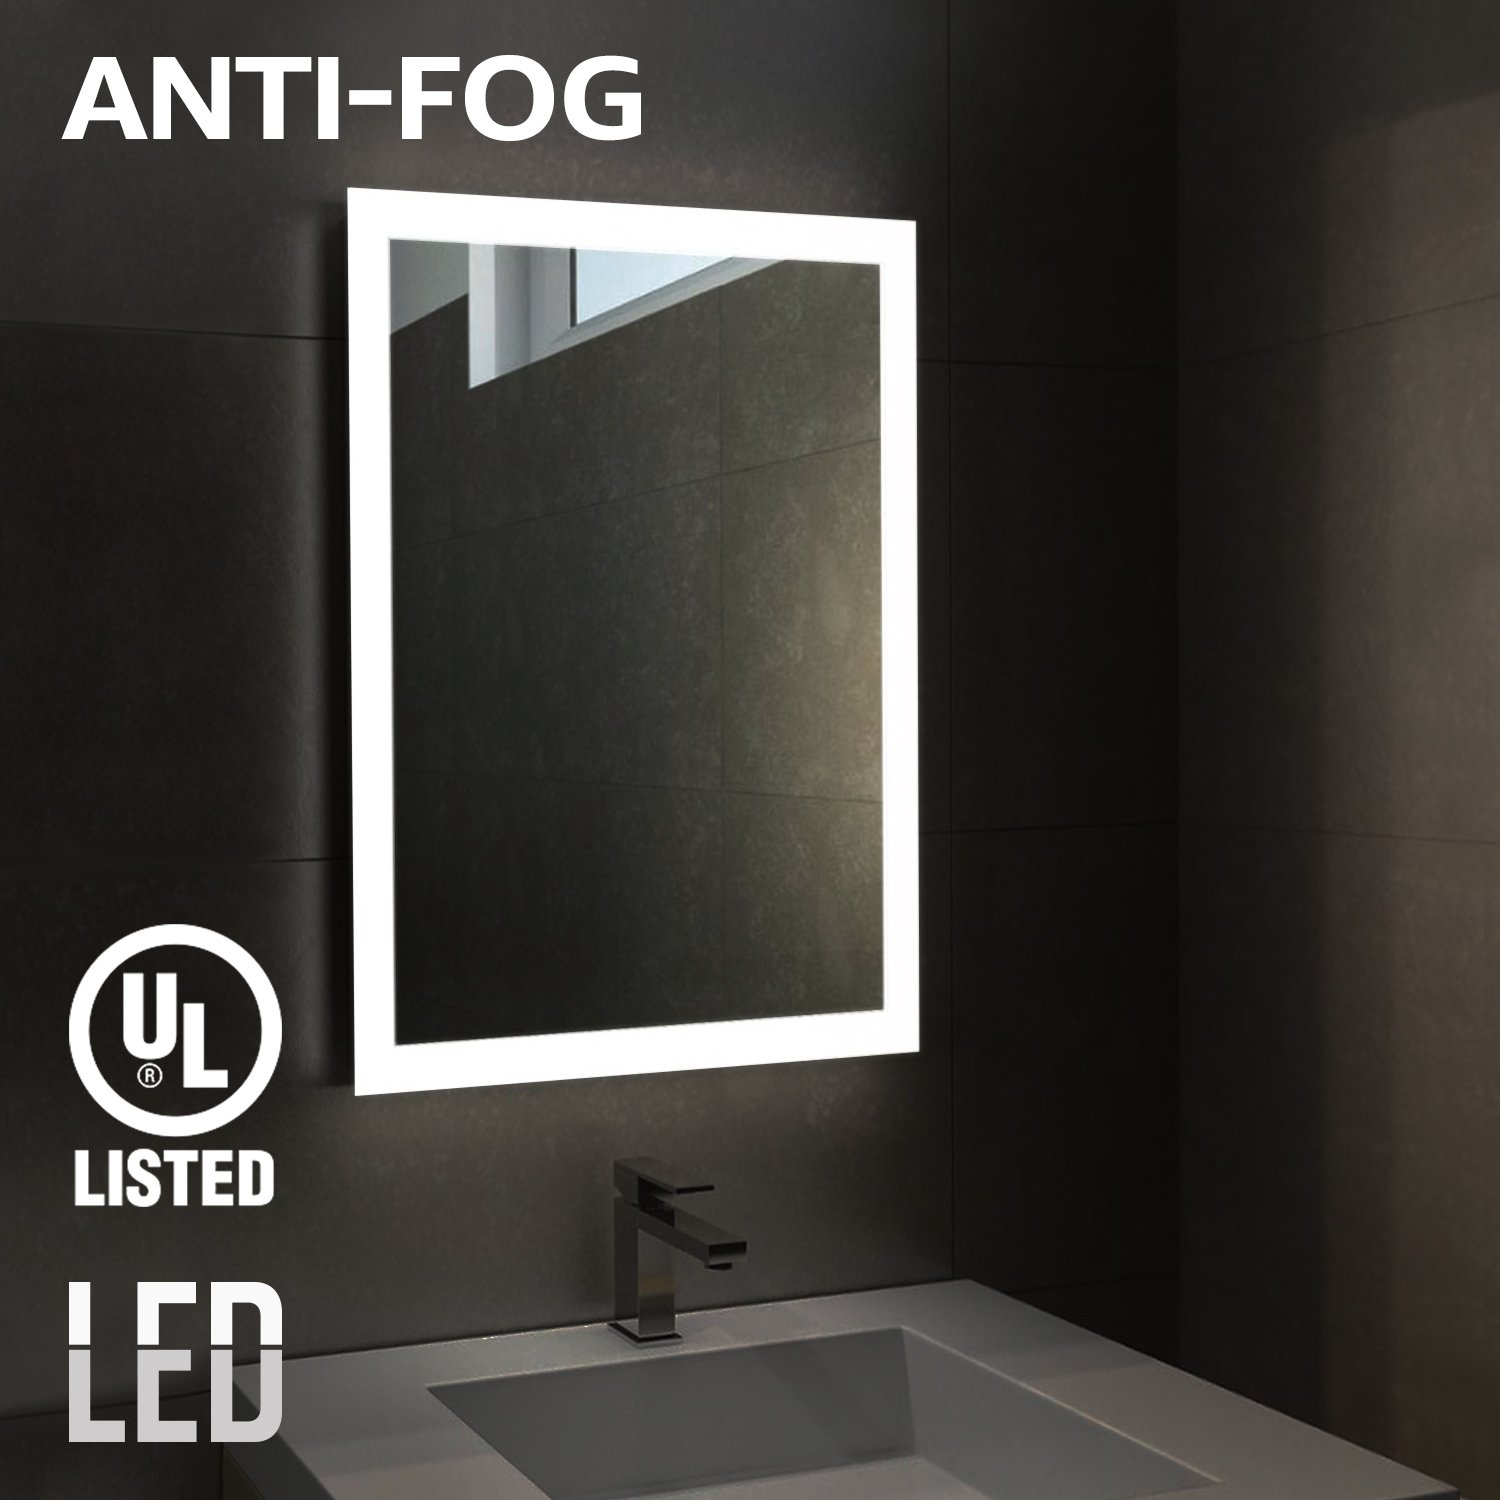 """Fogless LED Lighted Makeup Mirror, UL-listed, Wall Mounted Vanity Silver Mirror for Bathroom, SPA, Shower, Polished Edge, 32"""" × 24"""", Exterior Rectangle Ring Frosted Photic Zone"""